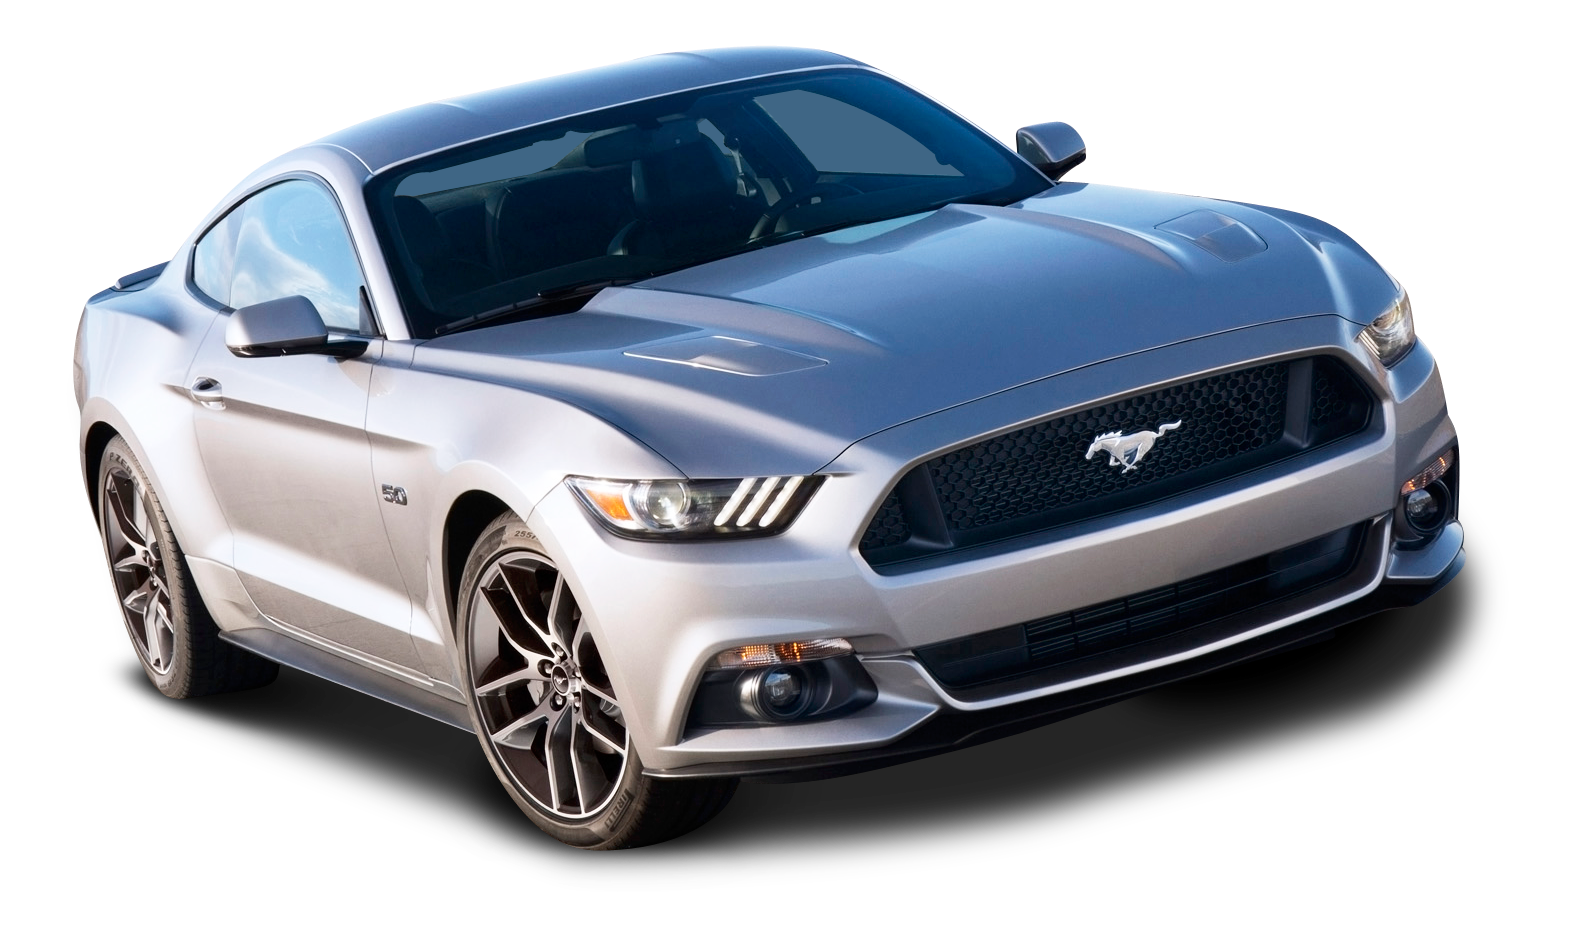 Ford Mustang Silver Car Png Image Purepng Free Transparent Cc0